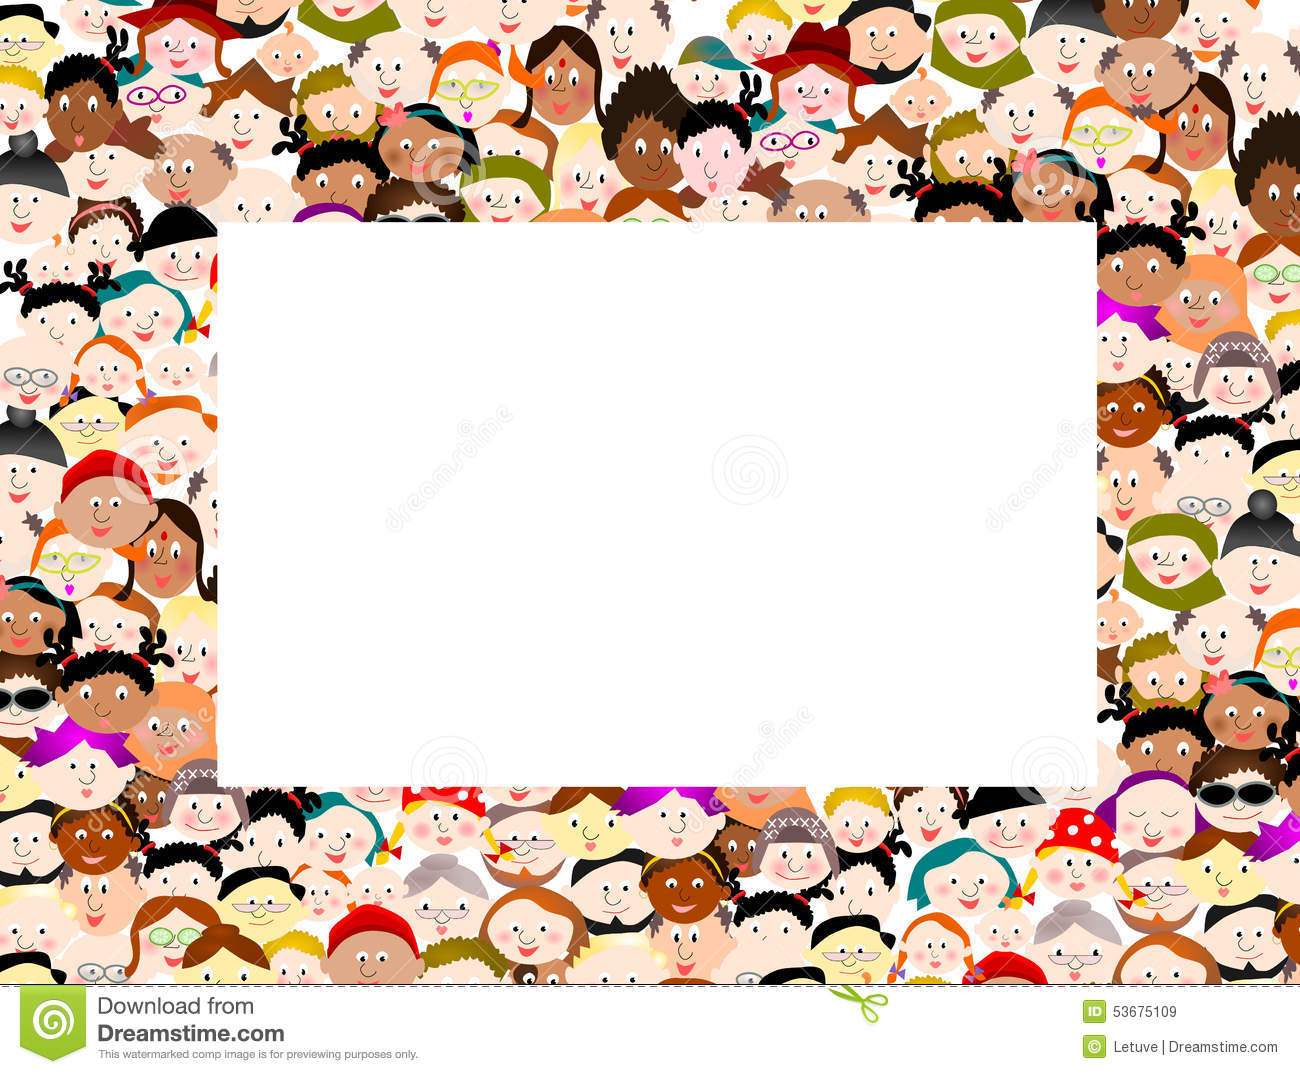 People border clipart freeuse download People clipart border - ClipartFest freeuse download